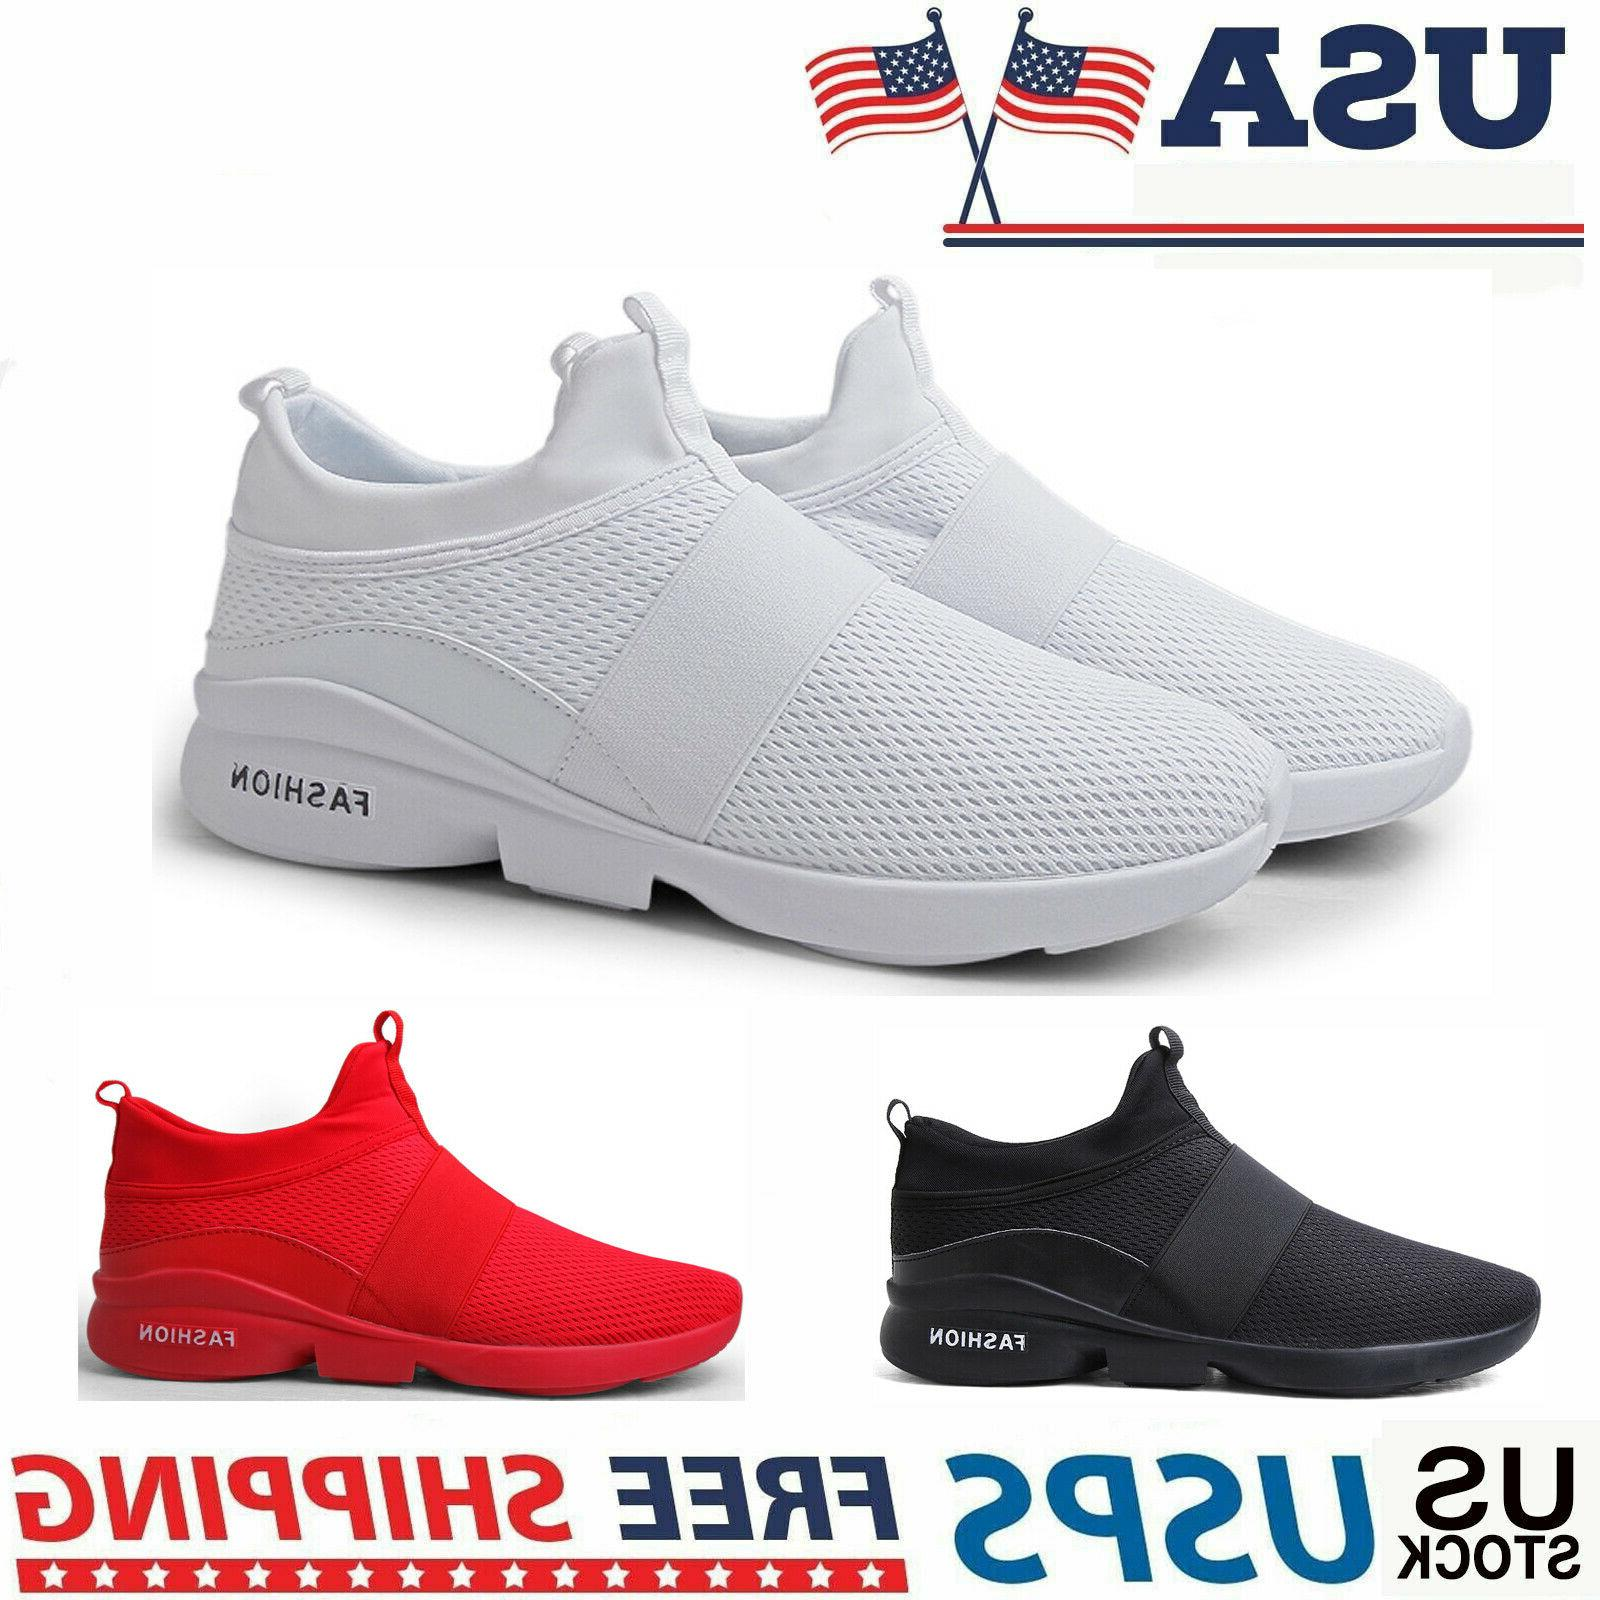 women s sneakers casual sports running tennis